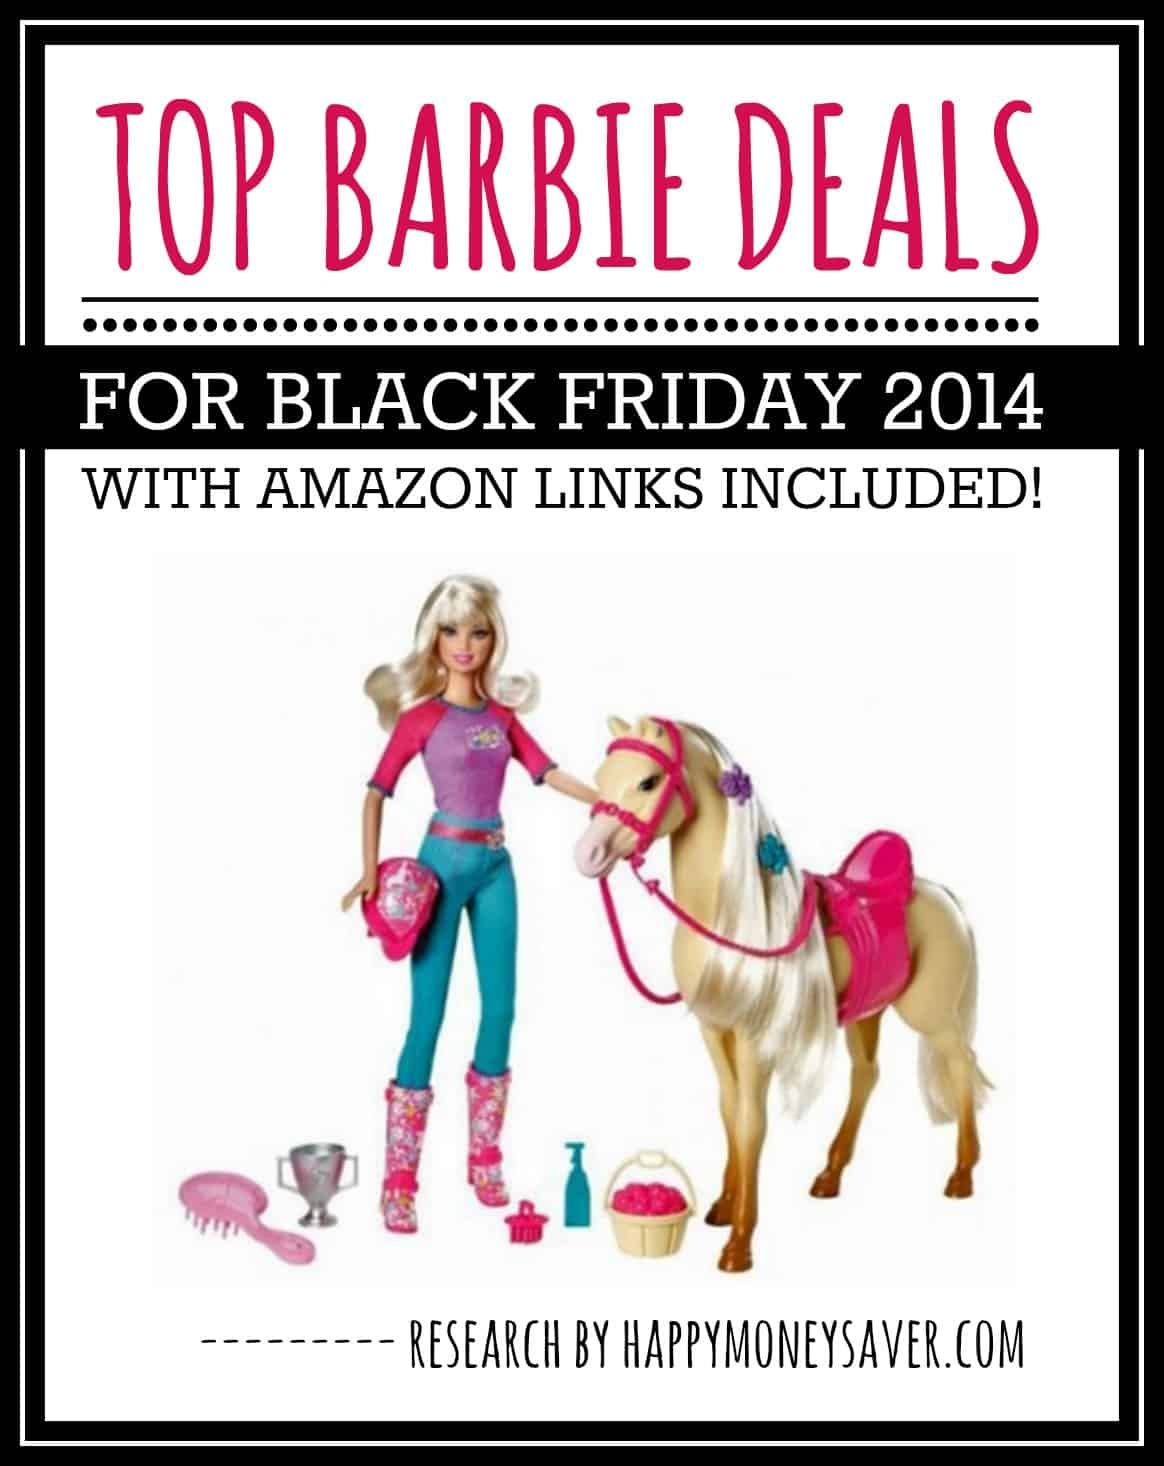 Top Barbie Deals for Black Friday 2013